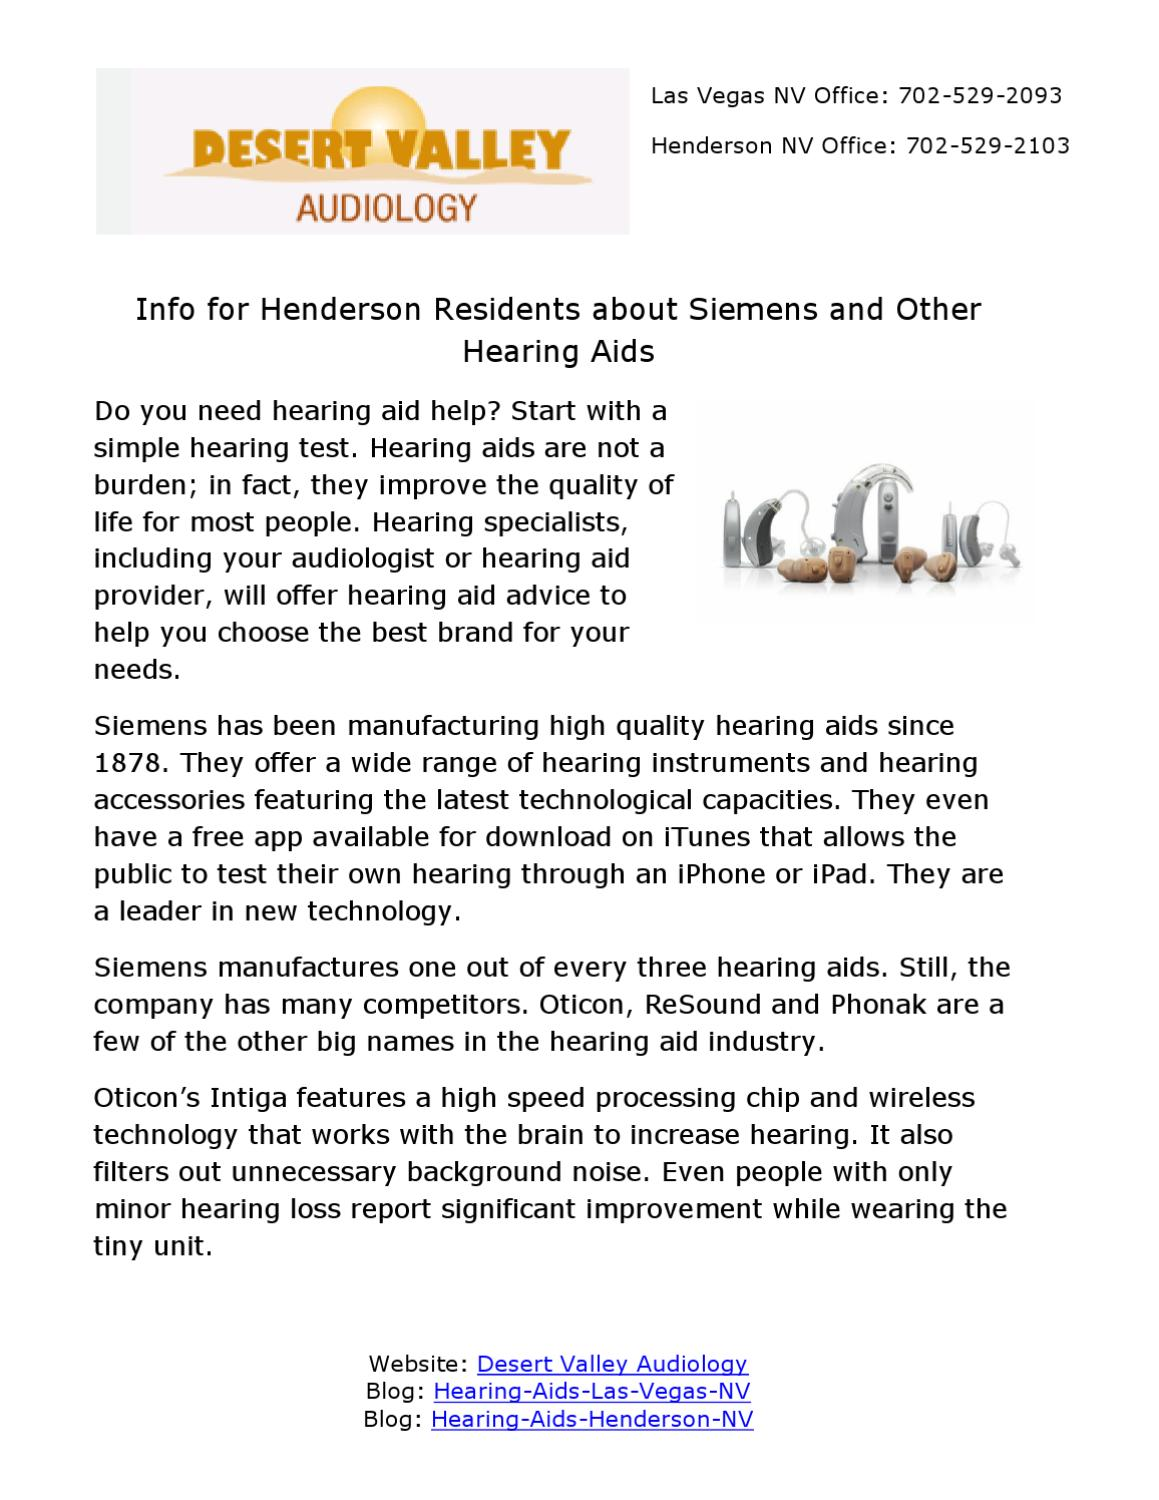 Info for Henderson Residents About Siemens and Other Hearing Aids by